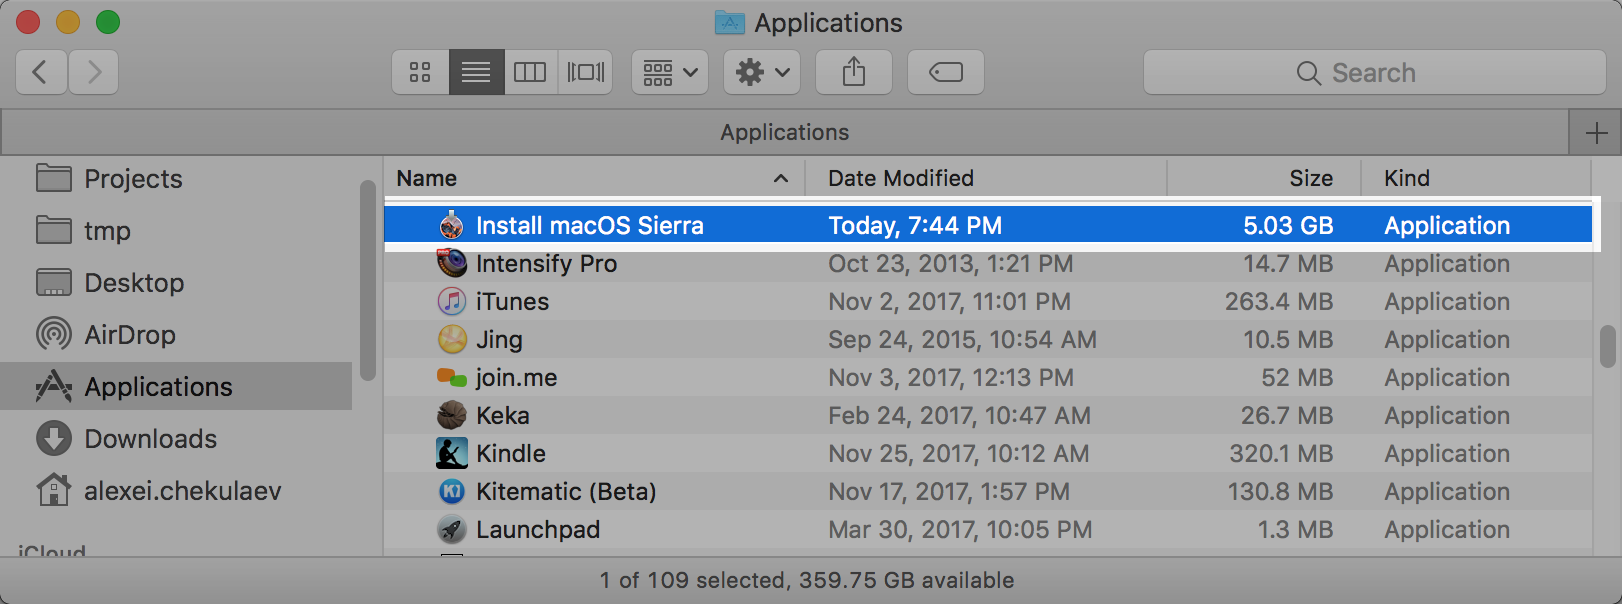 How to create a macOS virtual machine in VmWare Fusion on